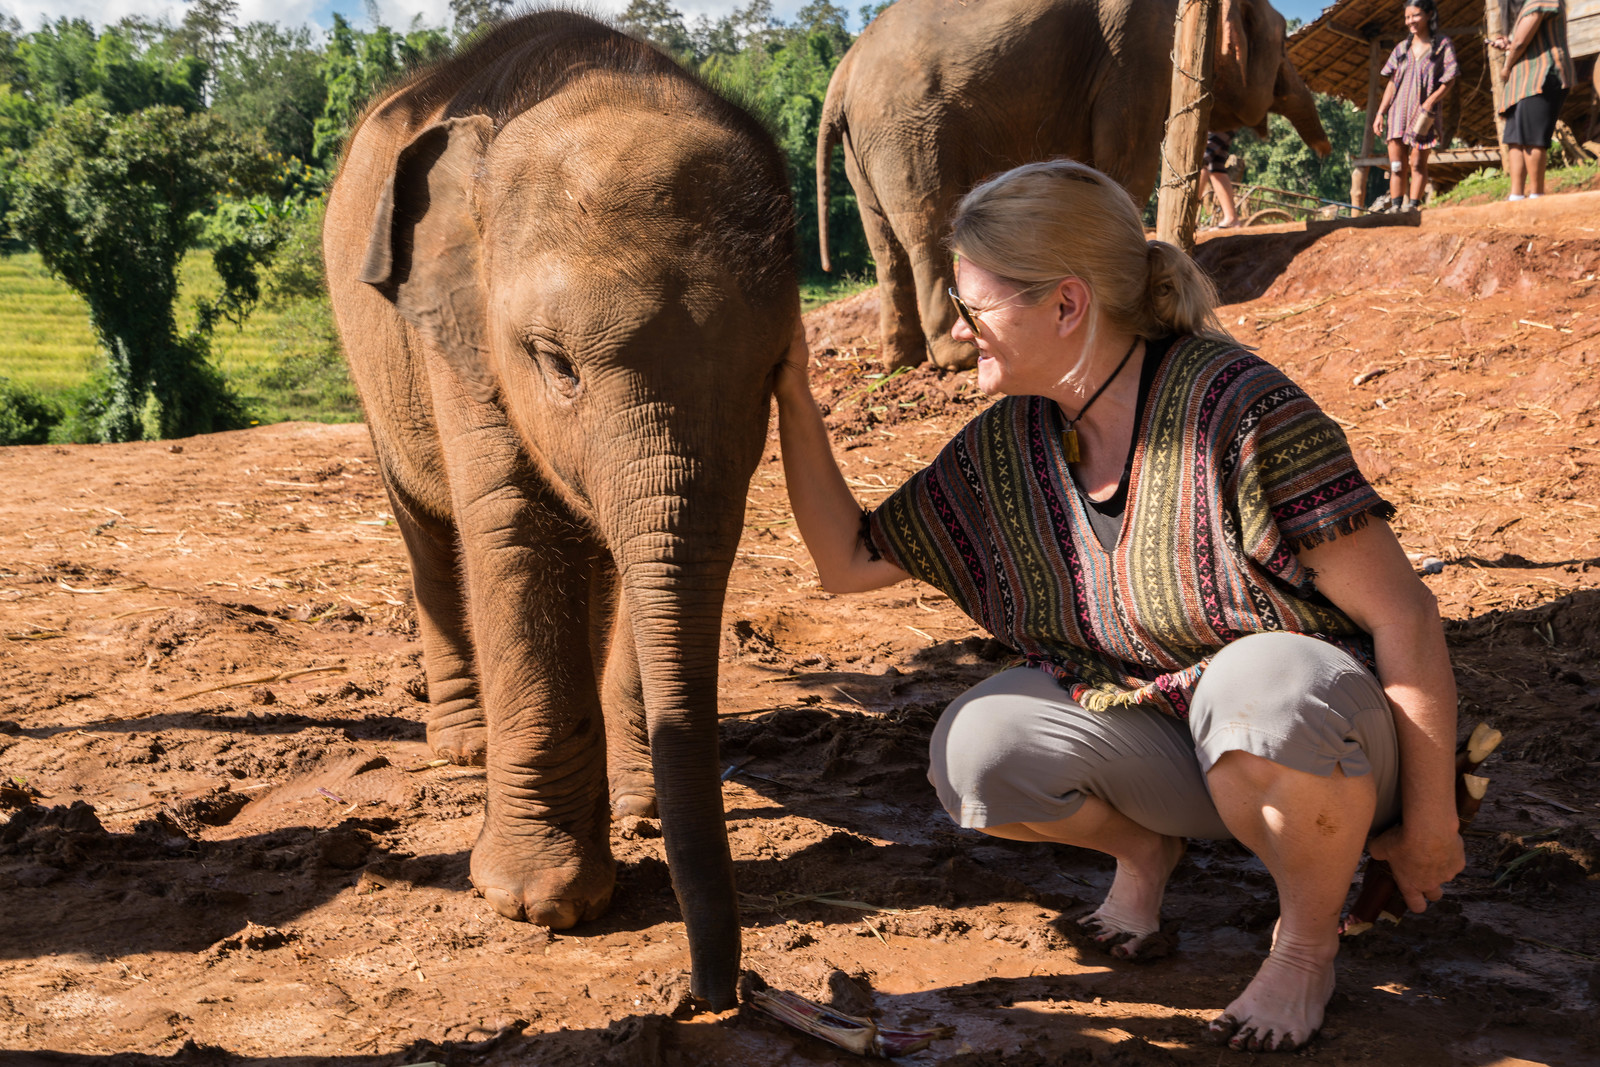 Finding an Elephant Sanctuary in Chiang Mai